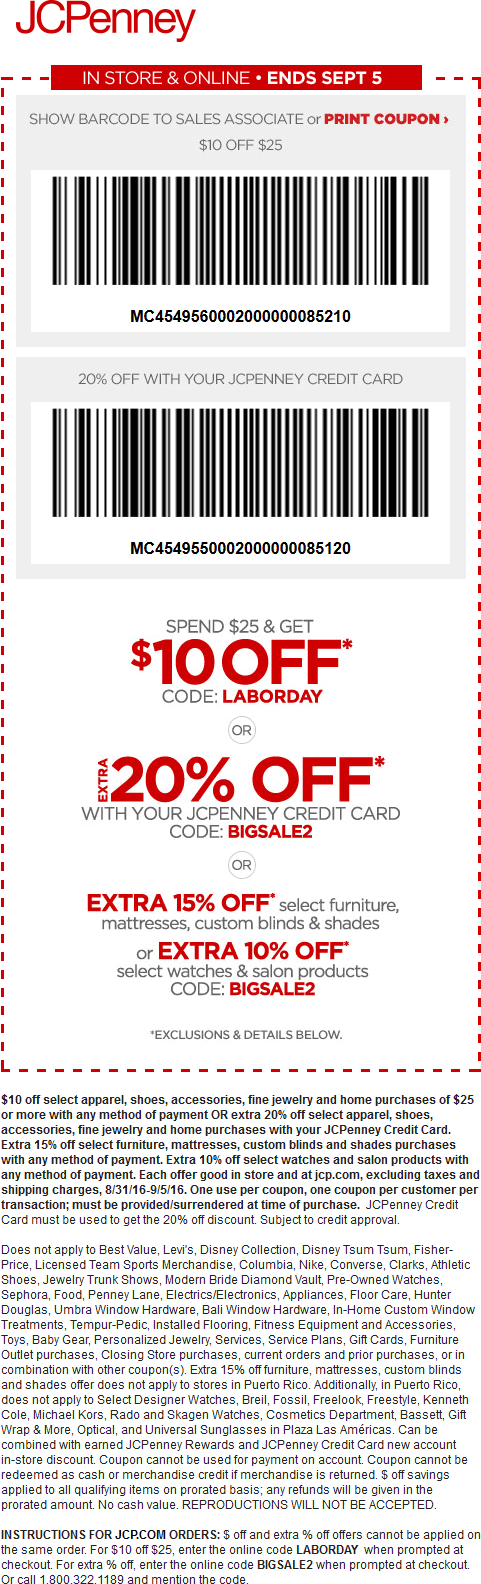 JCPenney Coupon October 2017 $10 off $25 at JCPenney, or online via promo code LABORDAY